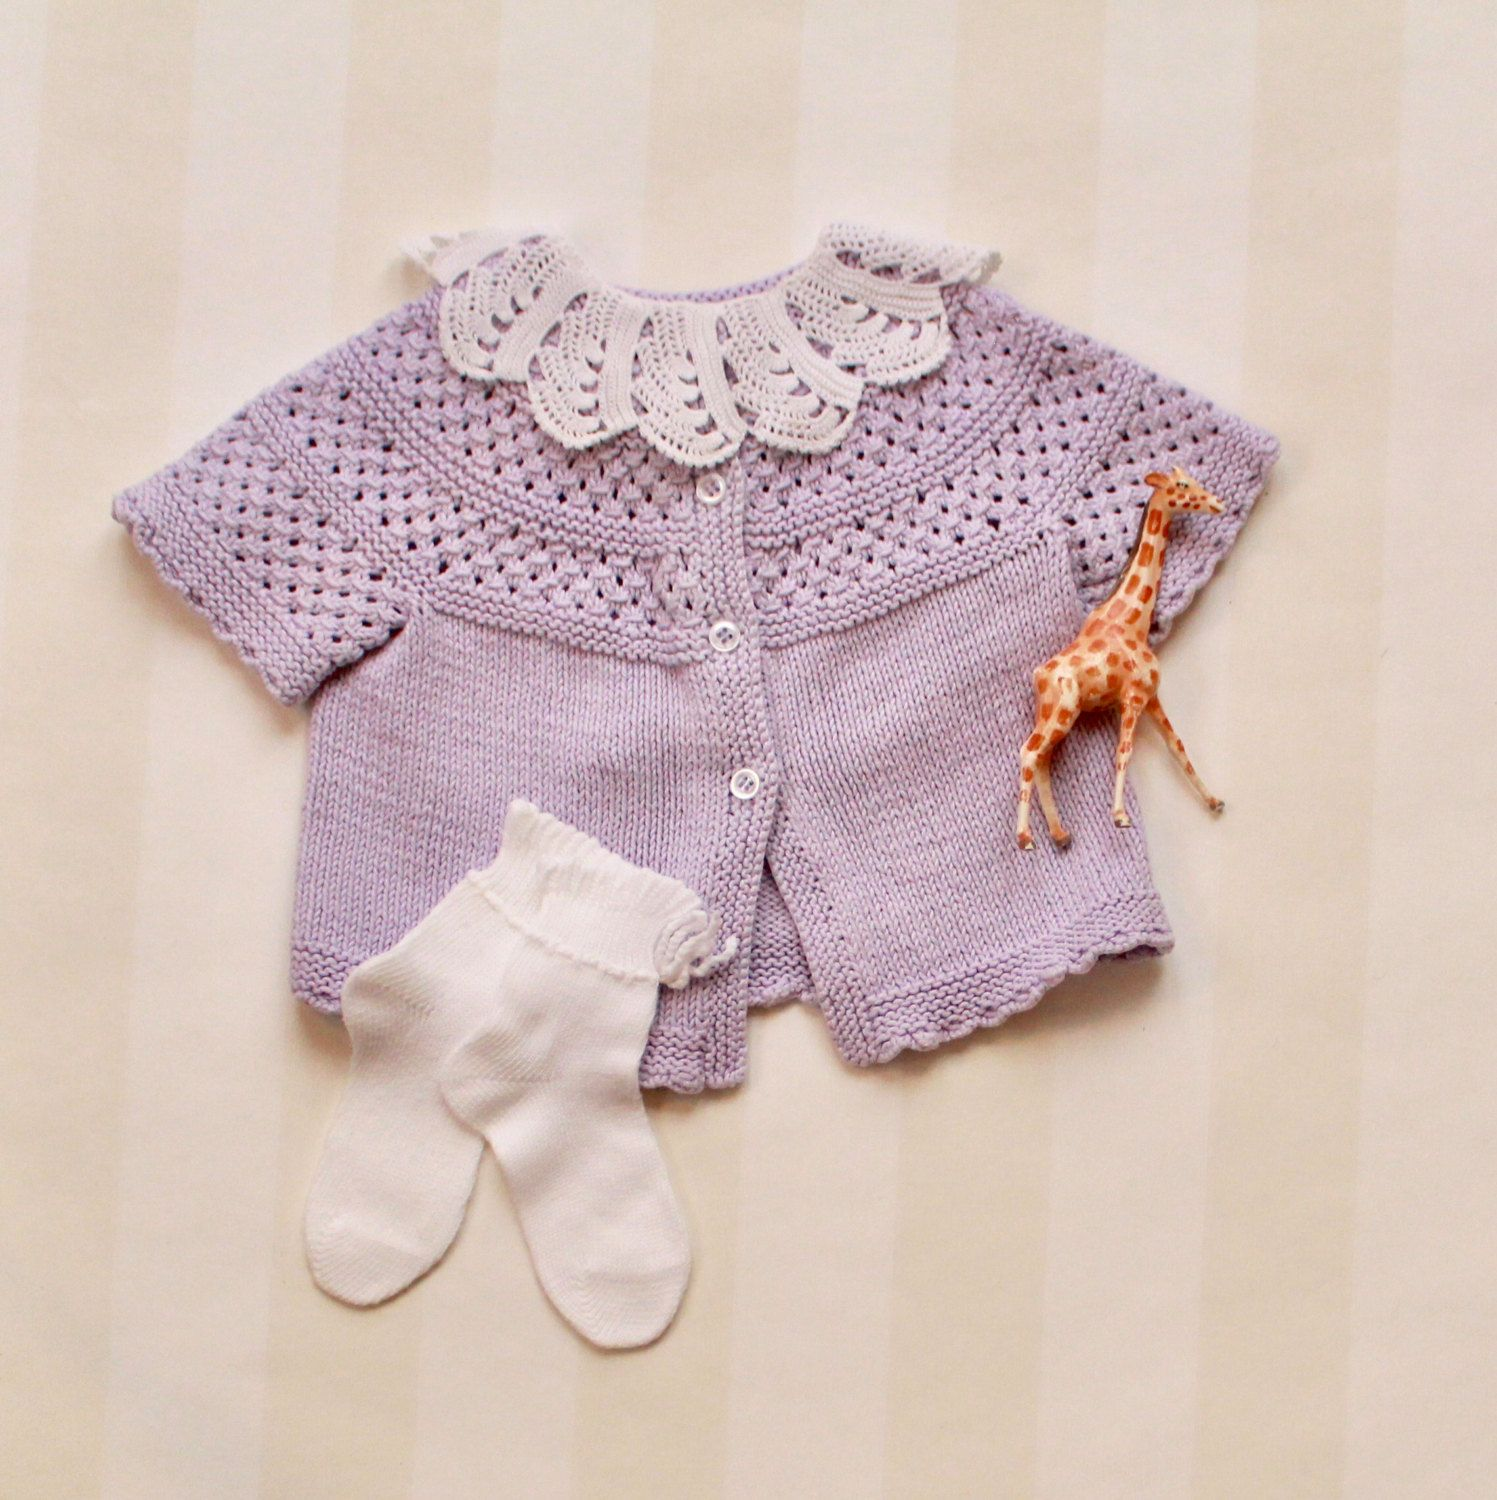 Baby Girl Cardigan in Lavender Cotton Knit 0 3 months Scandinavian